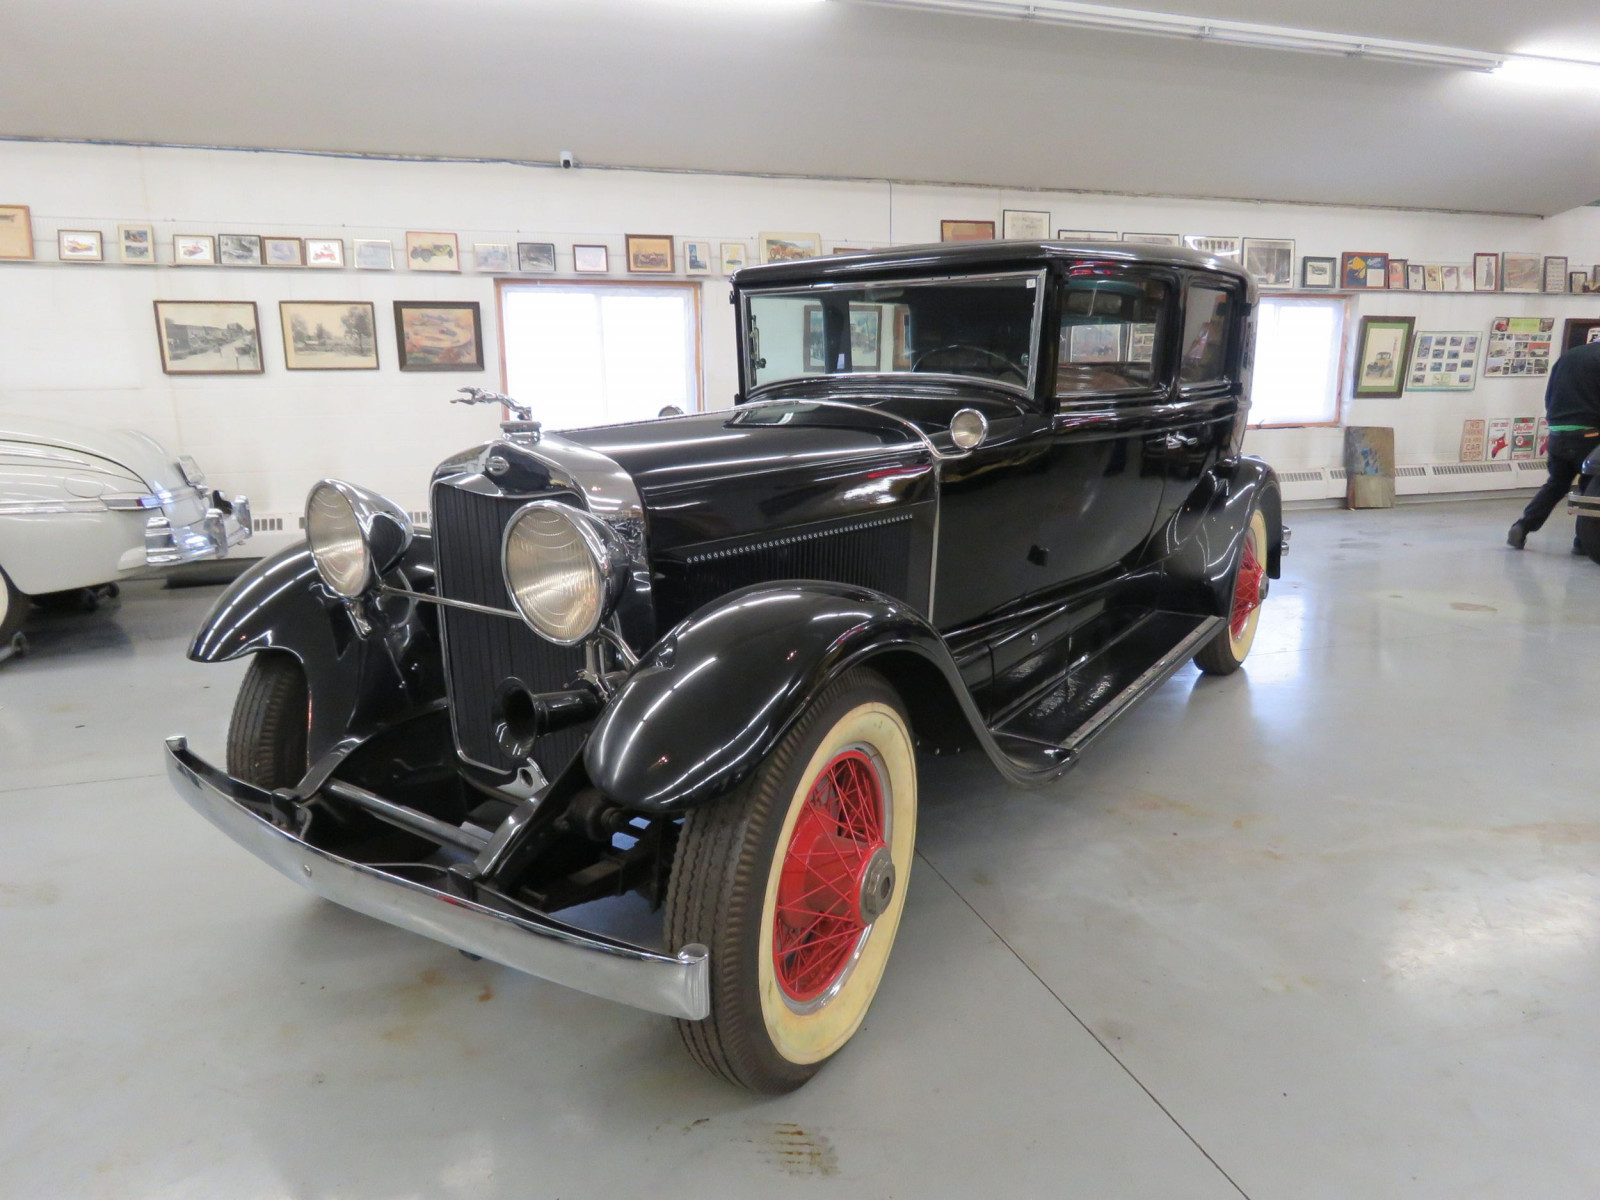 1929 Lincoln Model L 4dr Sedan - Image 1